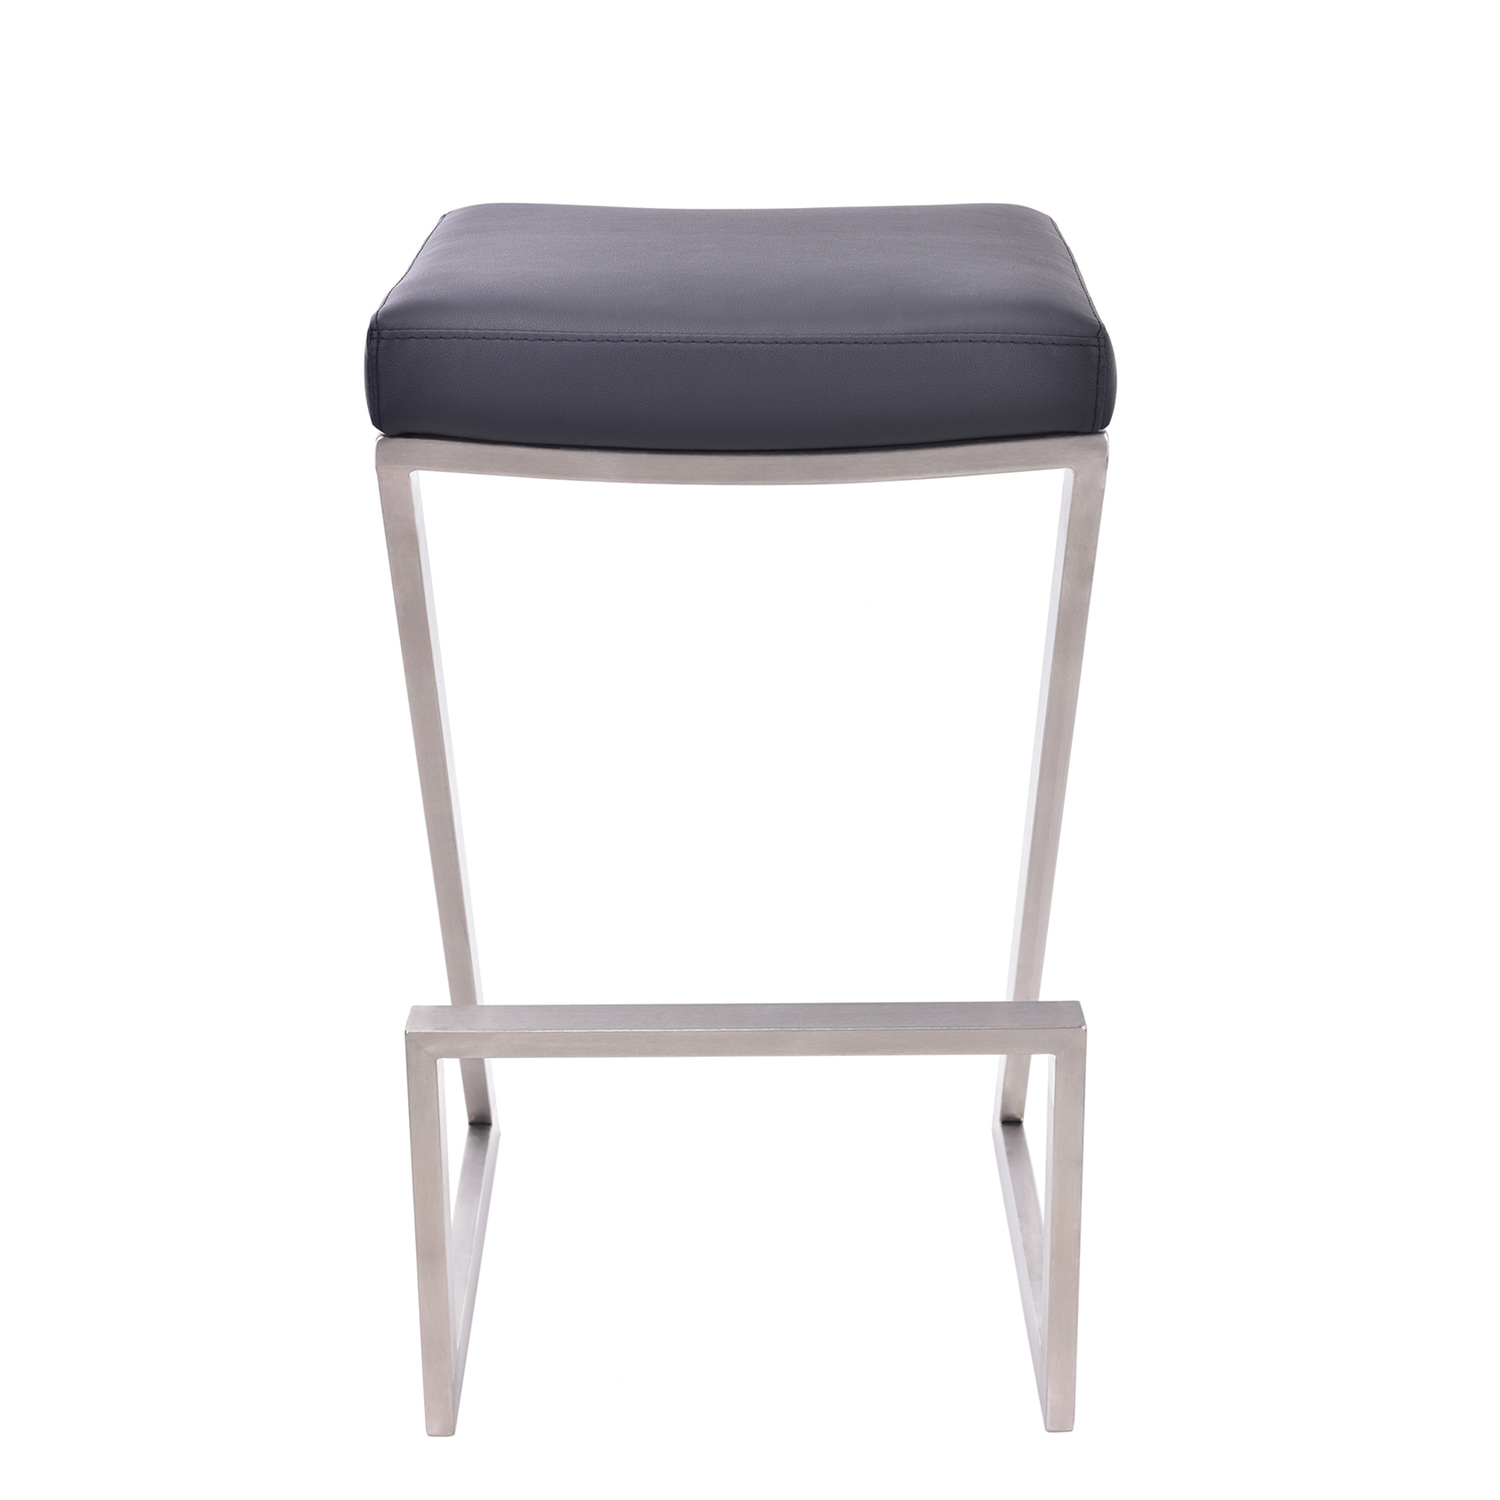 Armen Living Atlantis 26-inch Backless Bar Stool - Black Leatherette